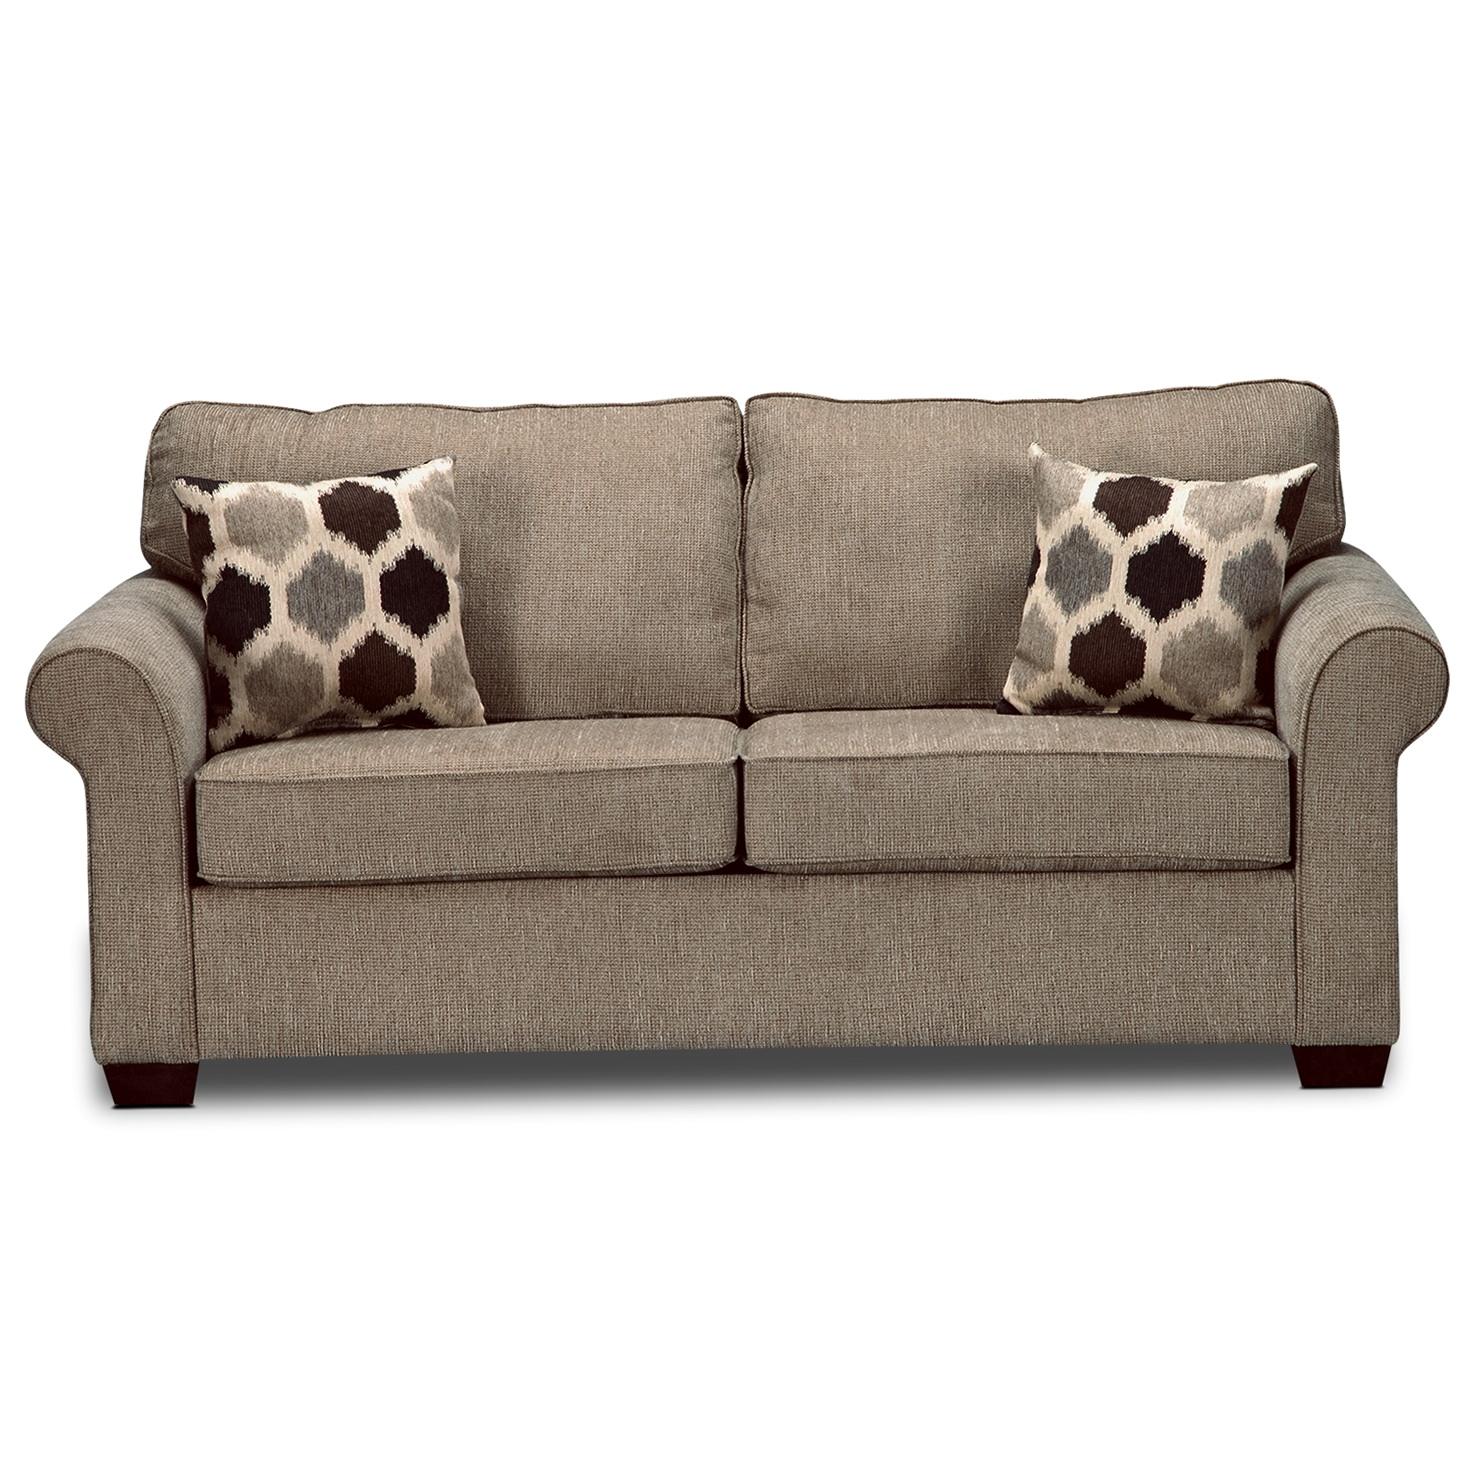 Loveseat Sleeper Sofas Cheap